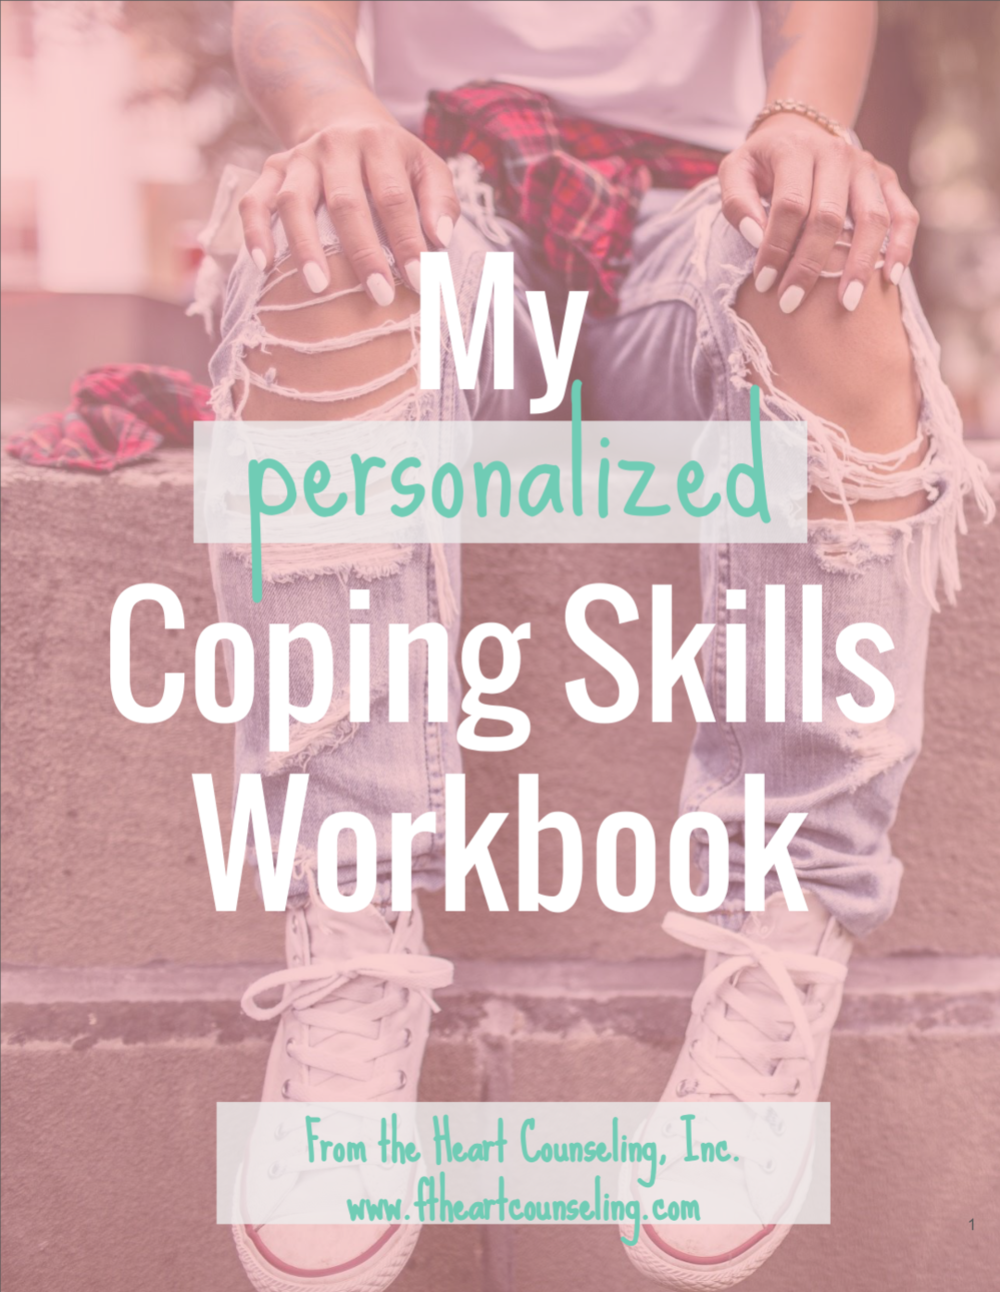 Struggling to find coping strategies that fit your personality? Tried all the suggestions? Grab this 11 page workbook to help you tailor strategies that match your character!